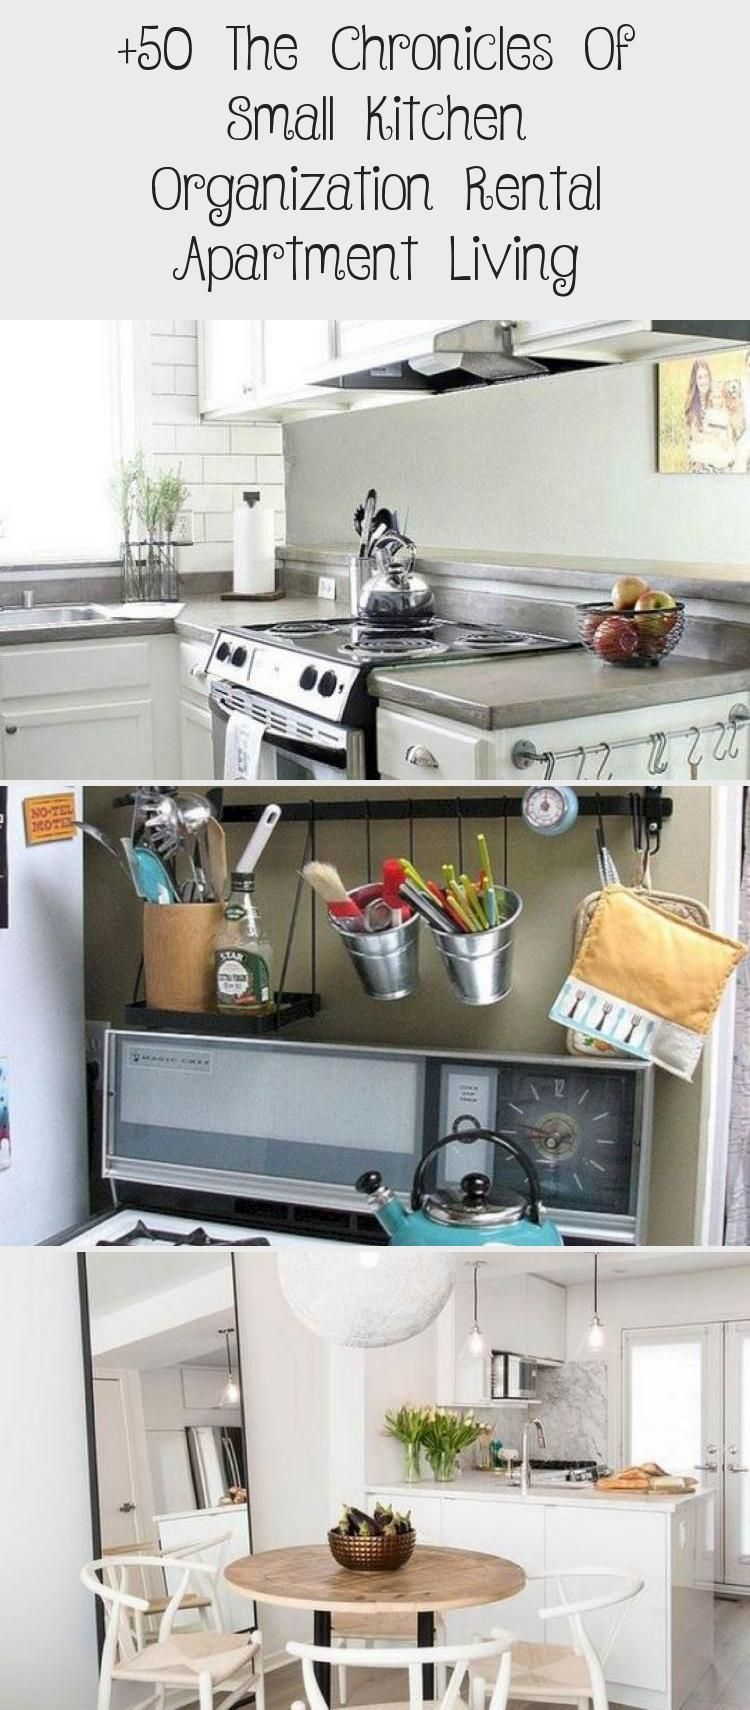 50 the chronicles of small kitchen organization rental apartment living interior design in on kitchen organization small apartment id=64467